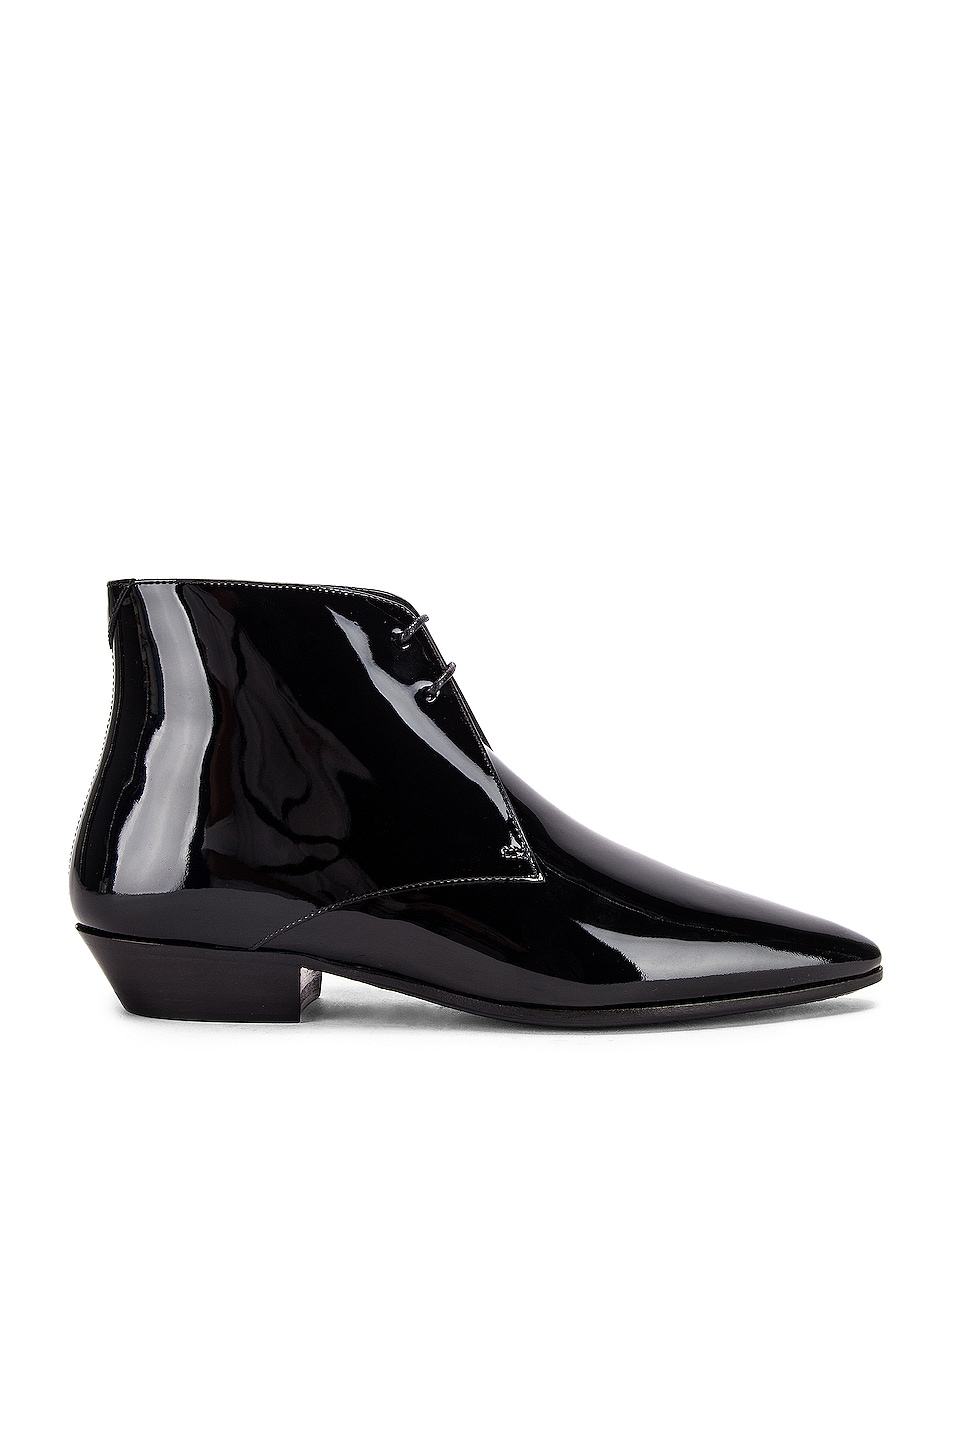 Image 1 of Saint Laurent Jonas Lace Up Patent Booties in Black